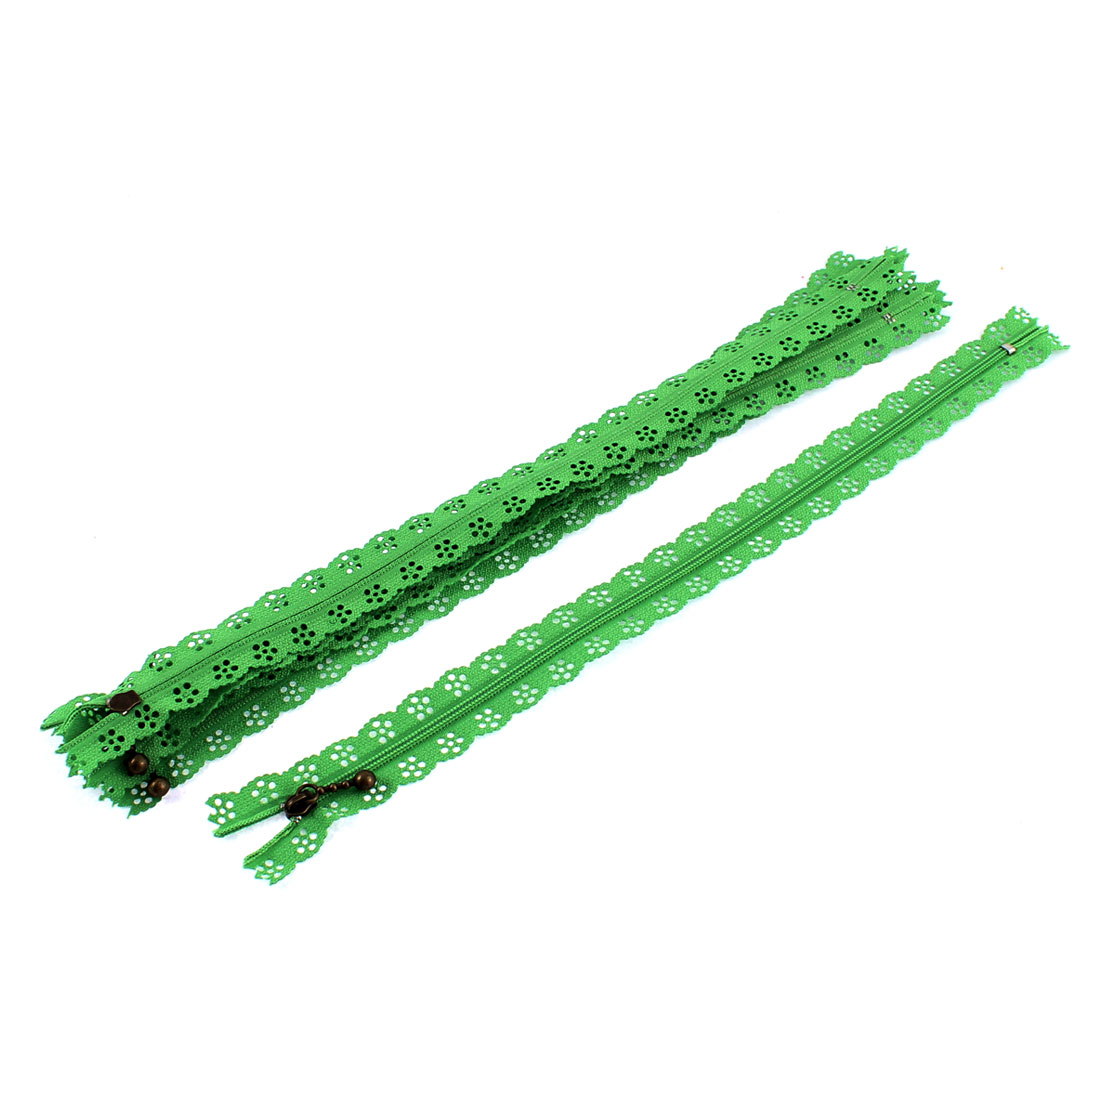 5 Pcs Green Lace Edged Zip Closed End Zipper 12-inch Long